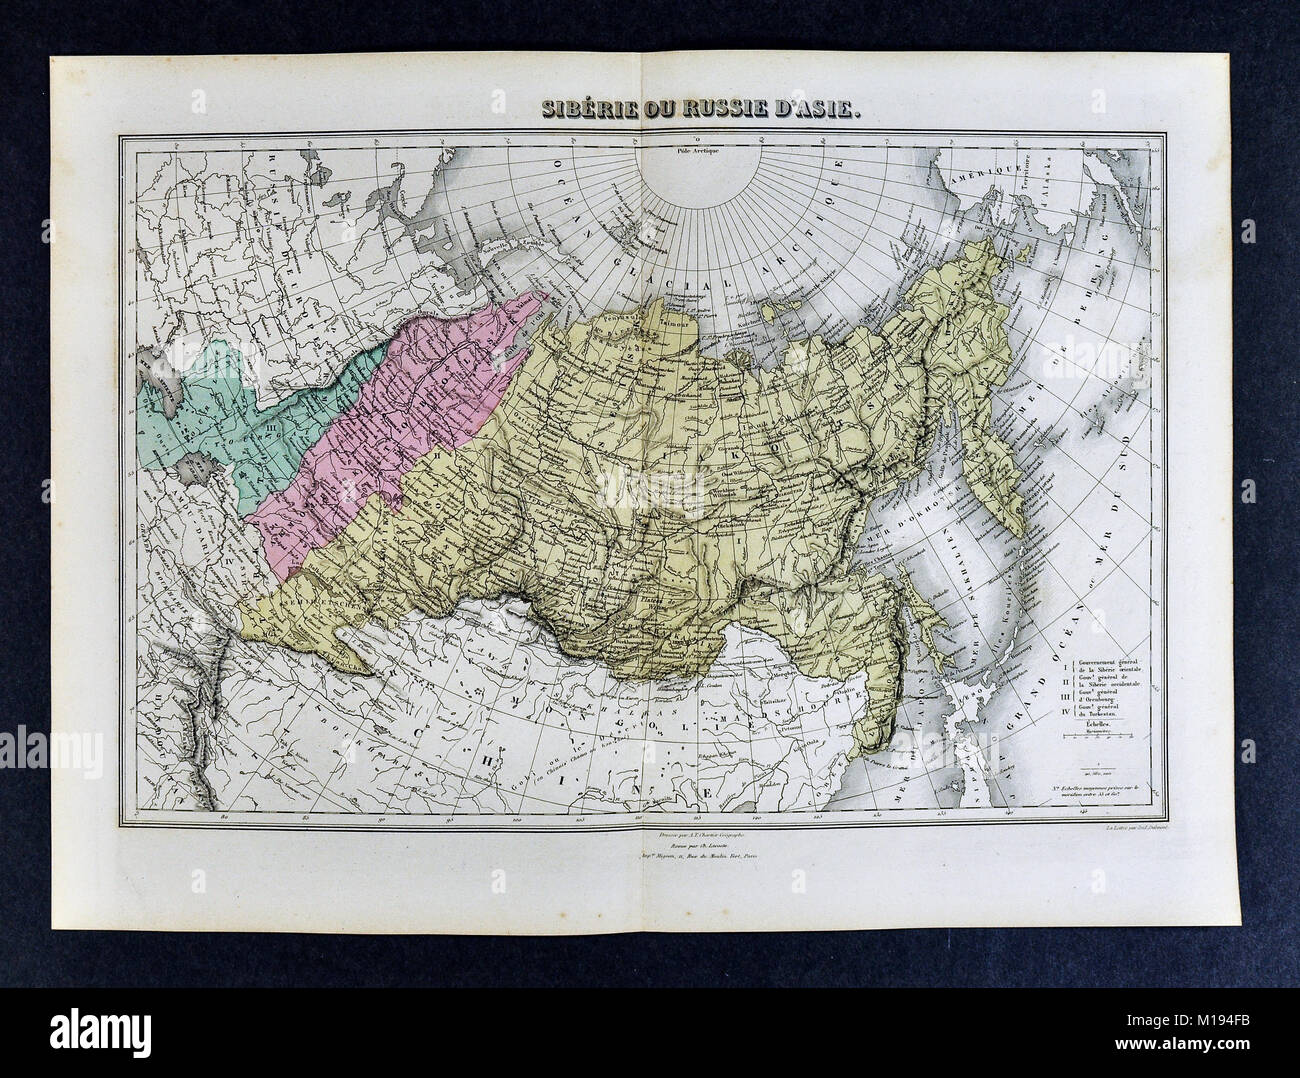 1877 Migeon Map Russia Siberia Asia Arctic Ocean Ural Mountains Stock Photo Alamy